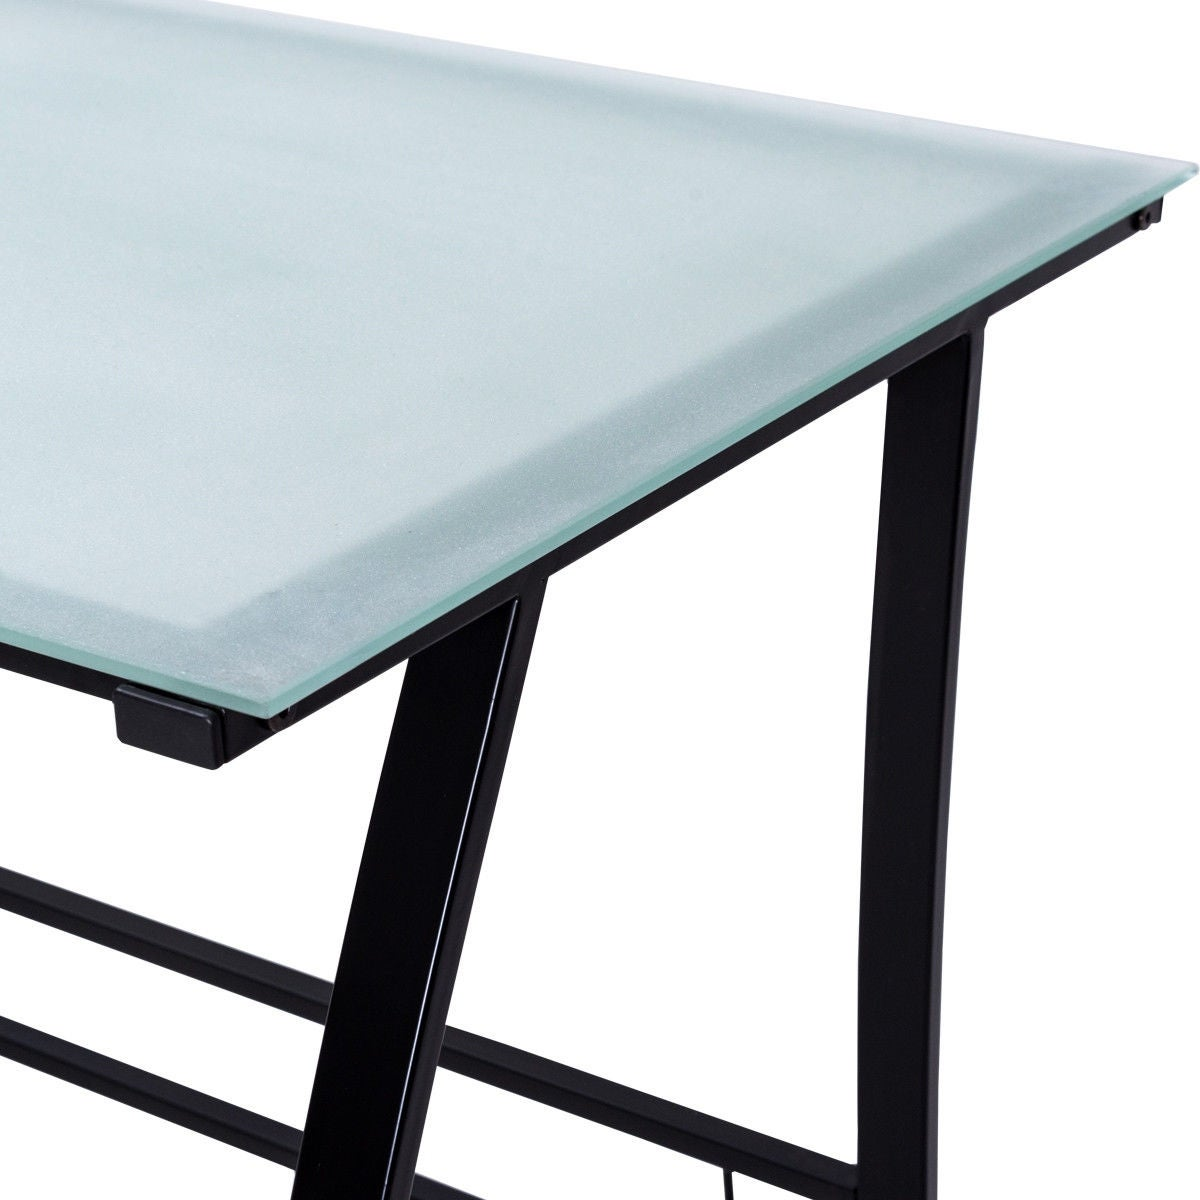 Shop Gymax Computer Desk PC Laptop Table Glass Top Writing Study  Workstation With Shelves   As Pic   Free Shipping Today   Overstock.com    20682530